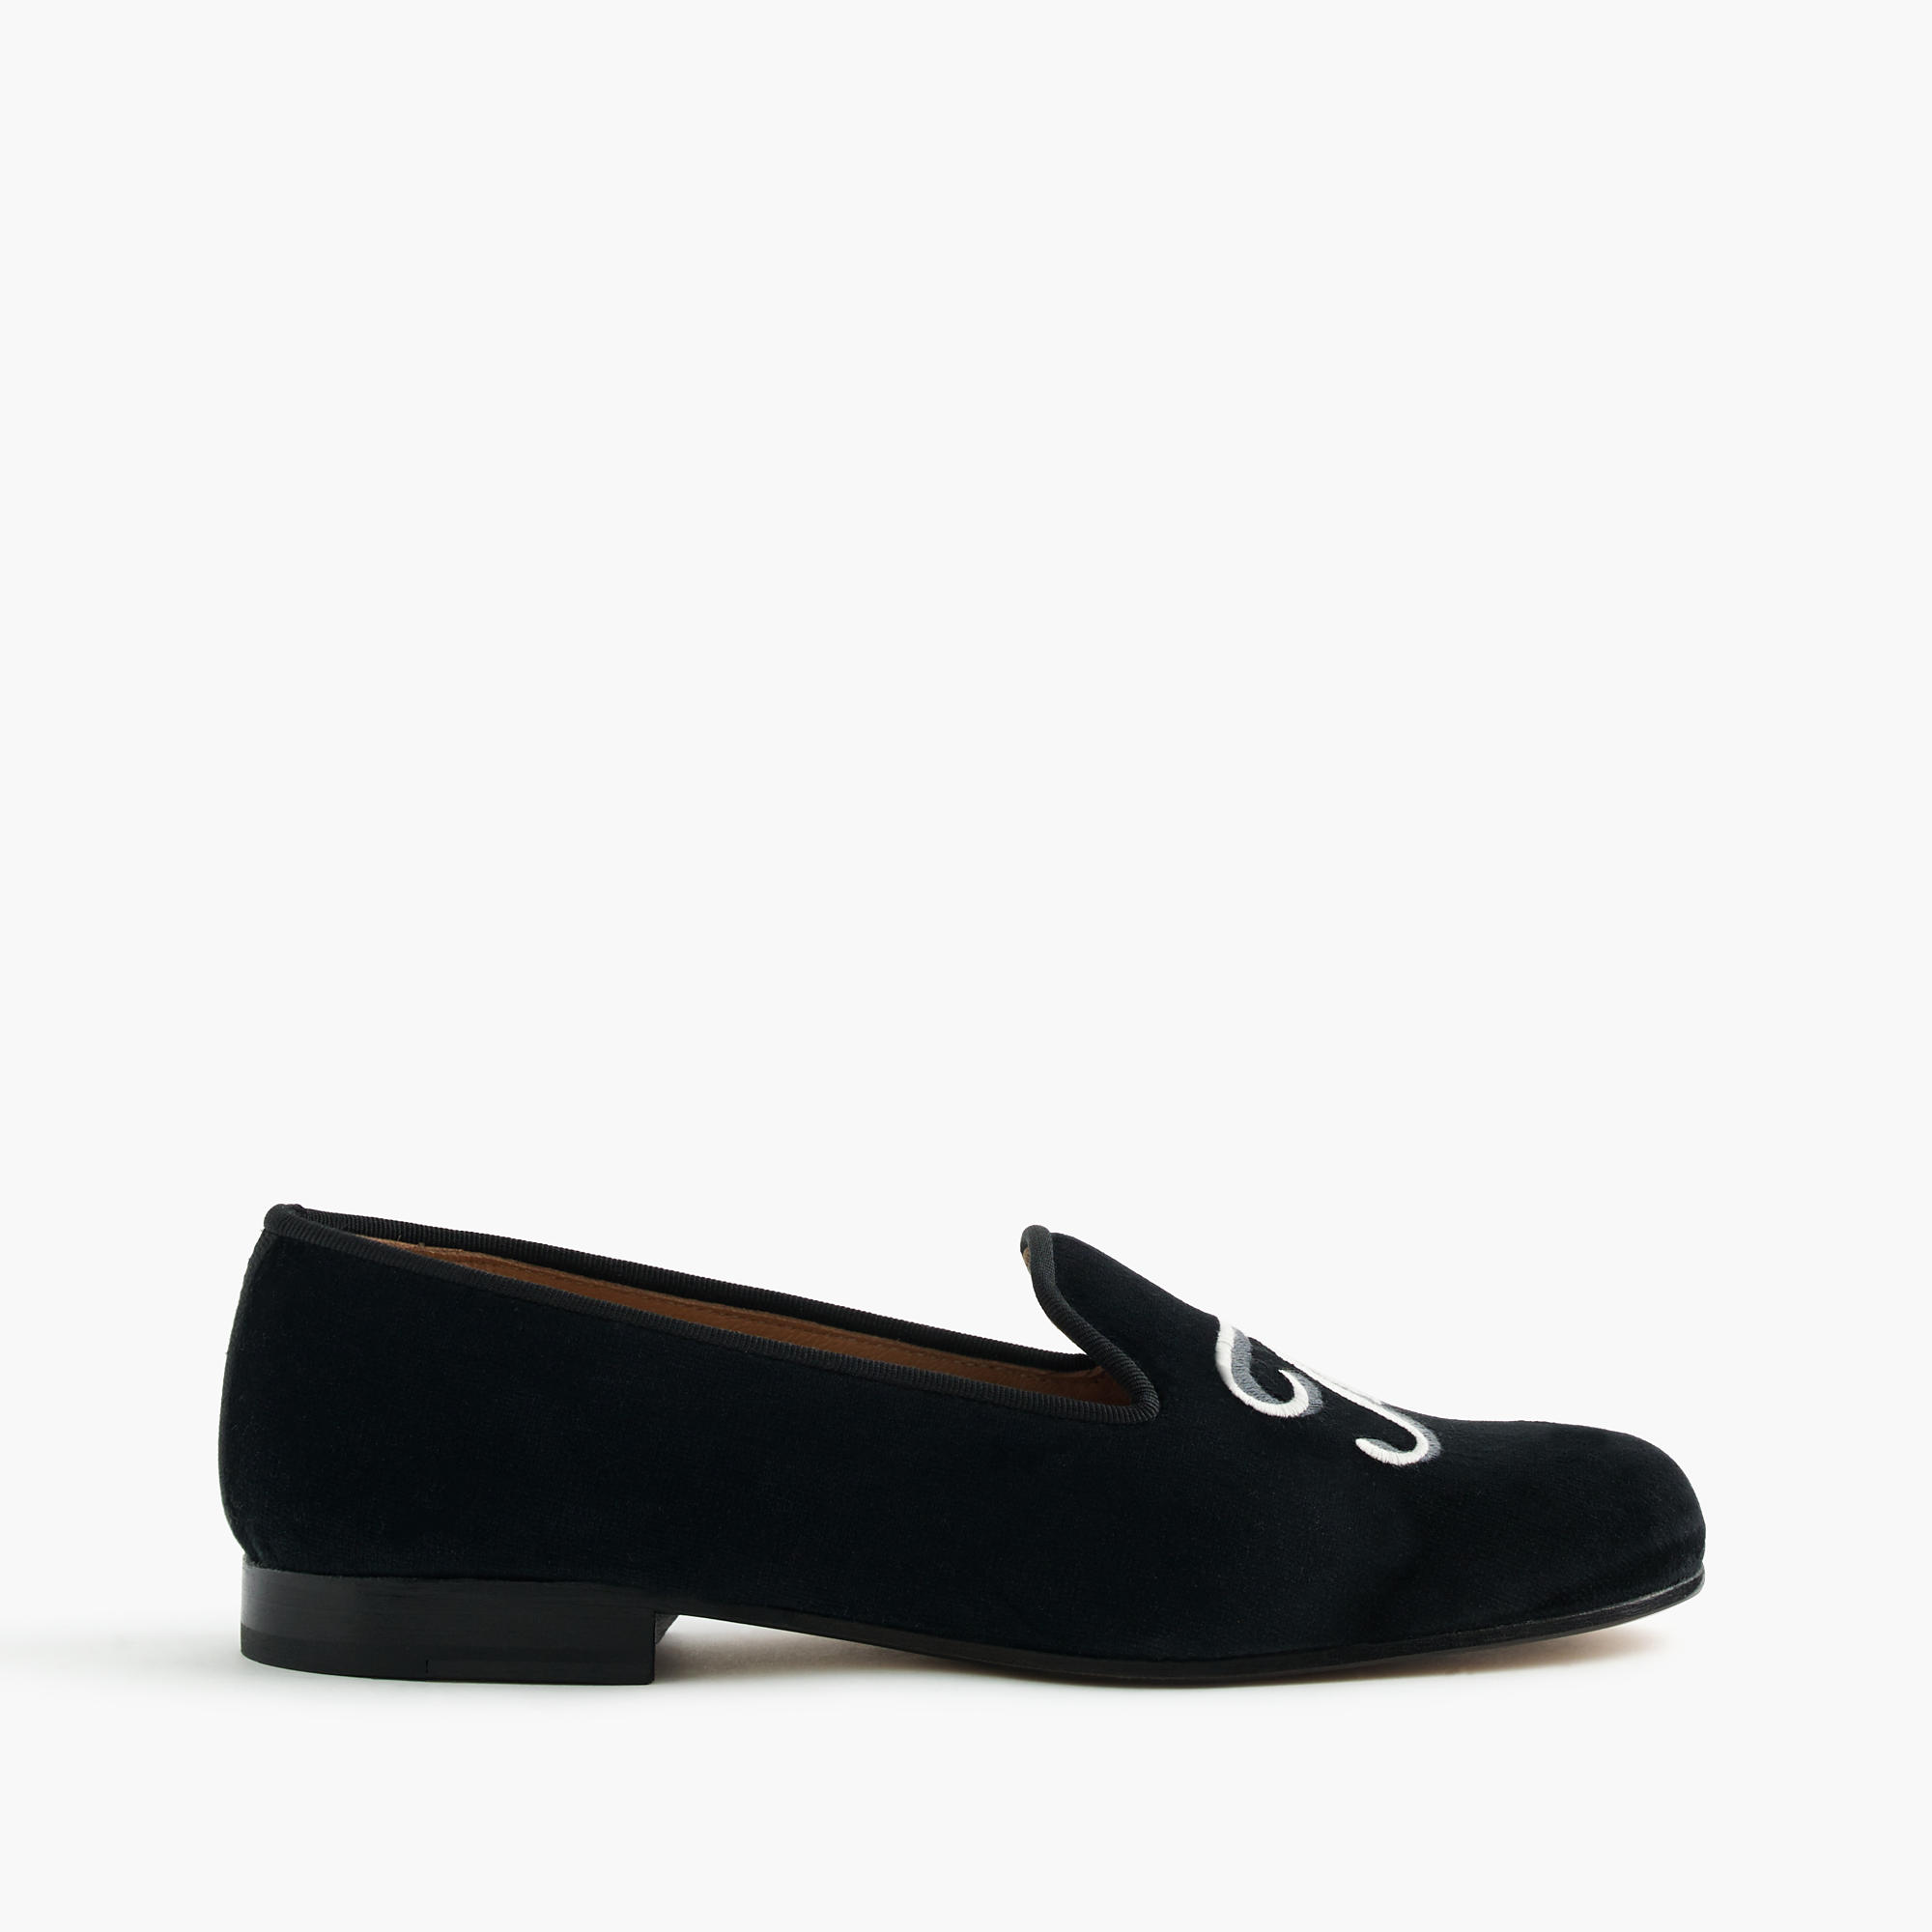 Stubbs wootton for j crew embroidered the end slippers for J crew bedroom slippers